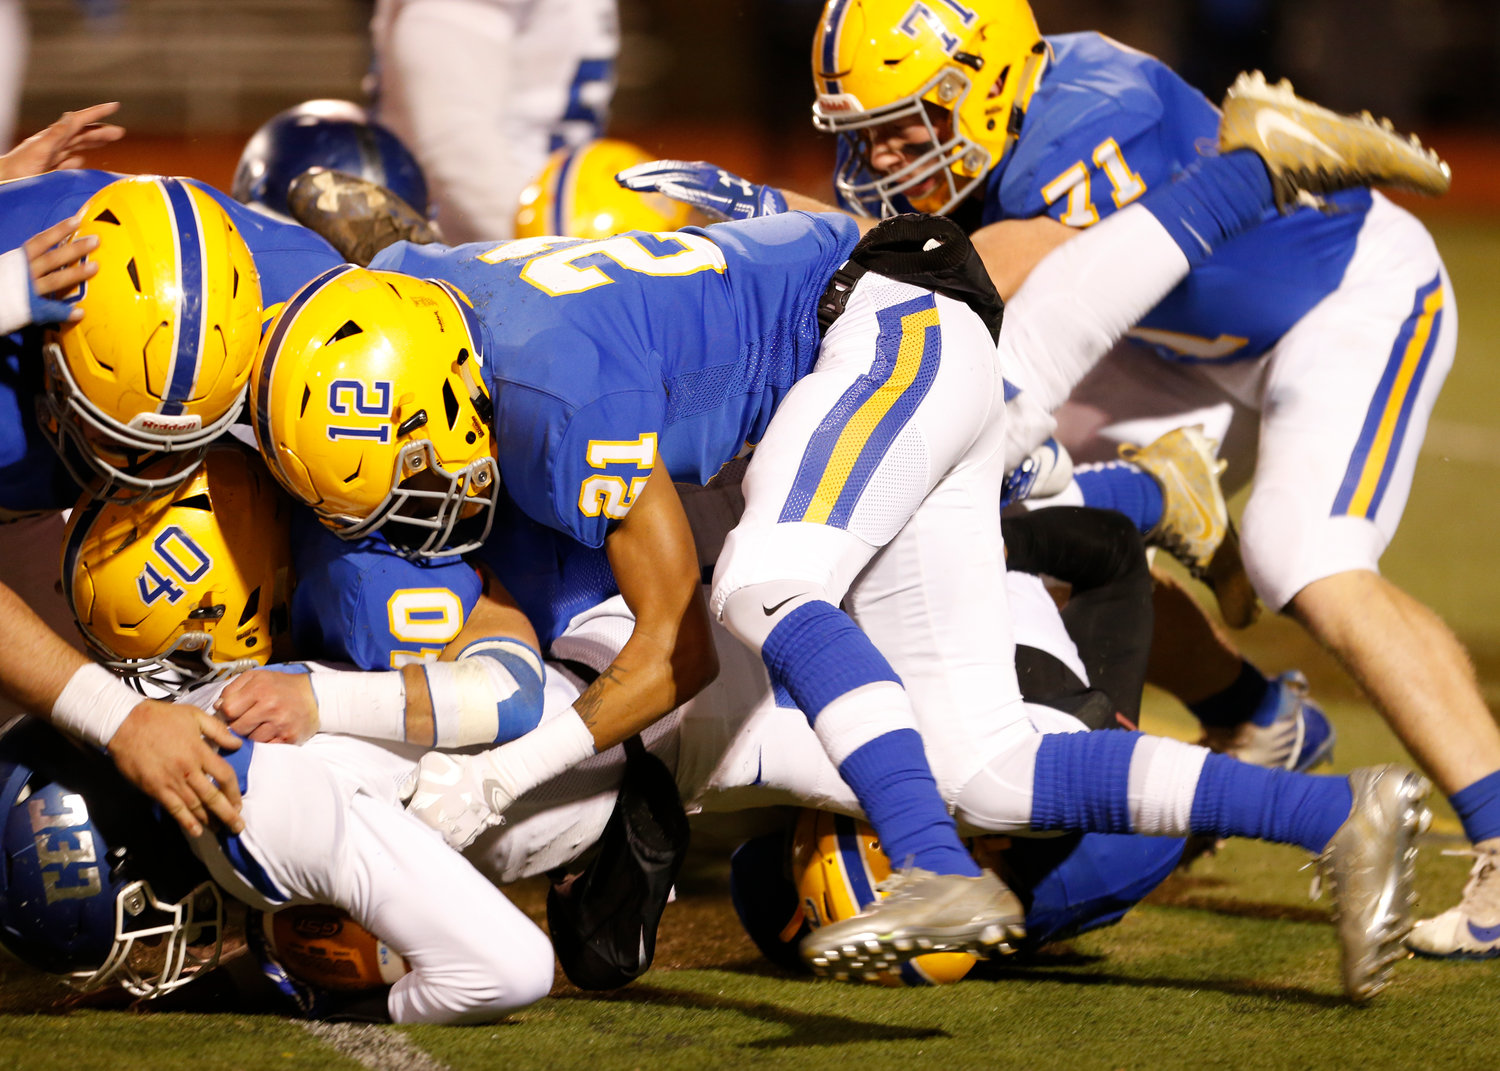 Joe Gusler, top left, Gage Radabaugh (No. 40), Antonio Bryant (No. 21) and Ethan Miller (No. 71) take down the ball carrier during Middletown's 21-14 win over Conwell-Egan at Milton Hershey High School in the PIAA 3A state quarterfinals Nov. 23.